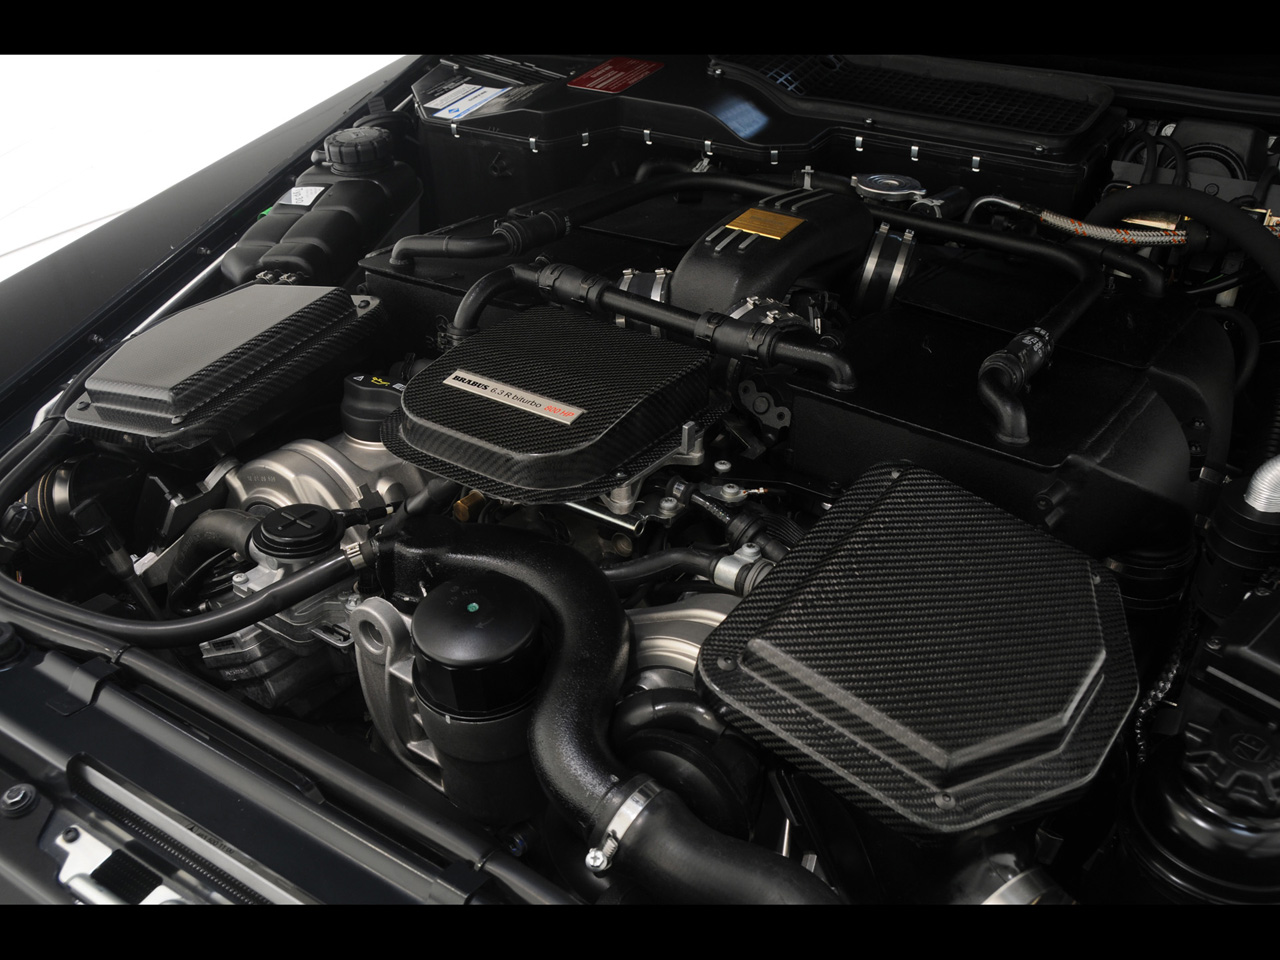 Mercedes-Benz G-Class engine #1